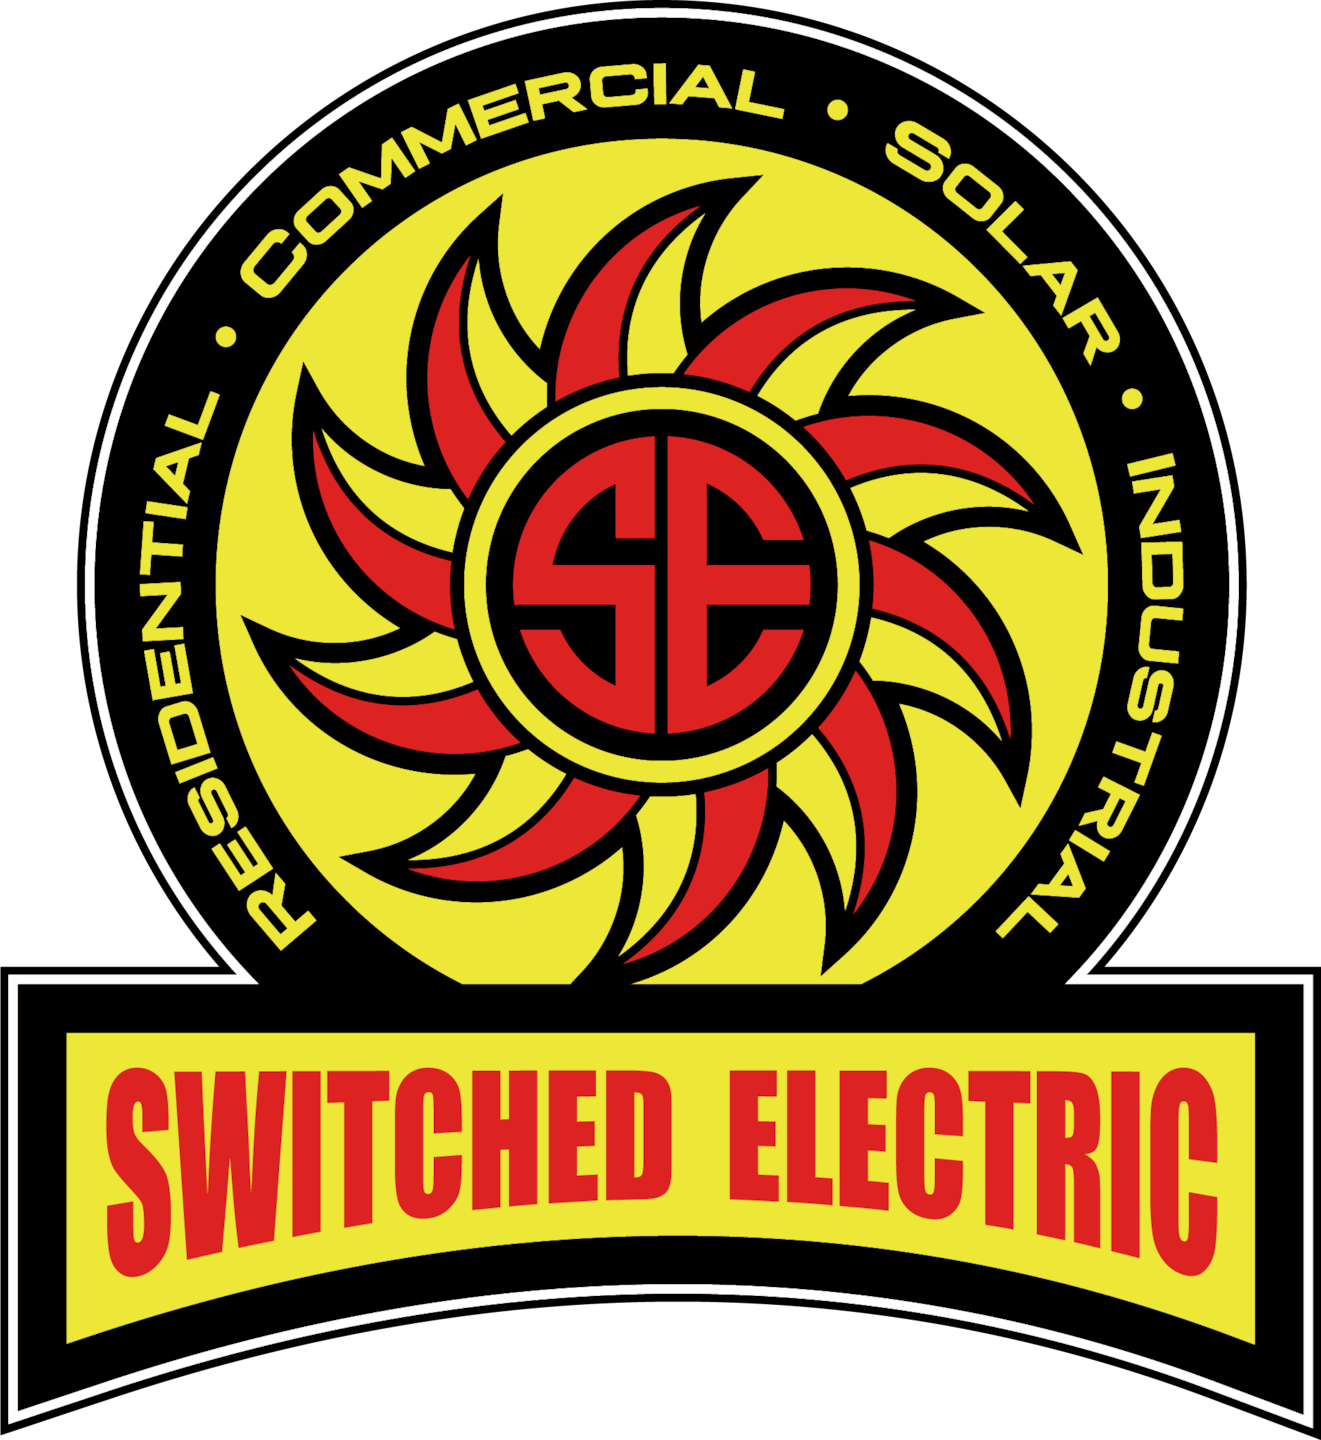 Switched Electric